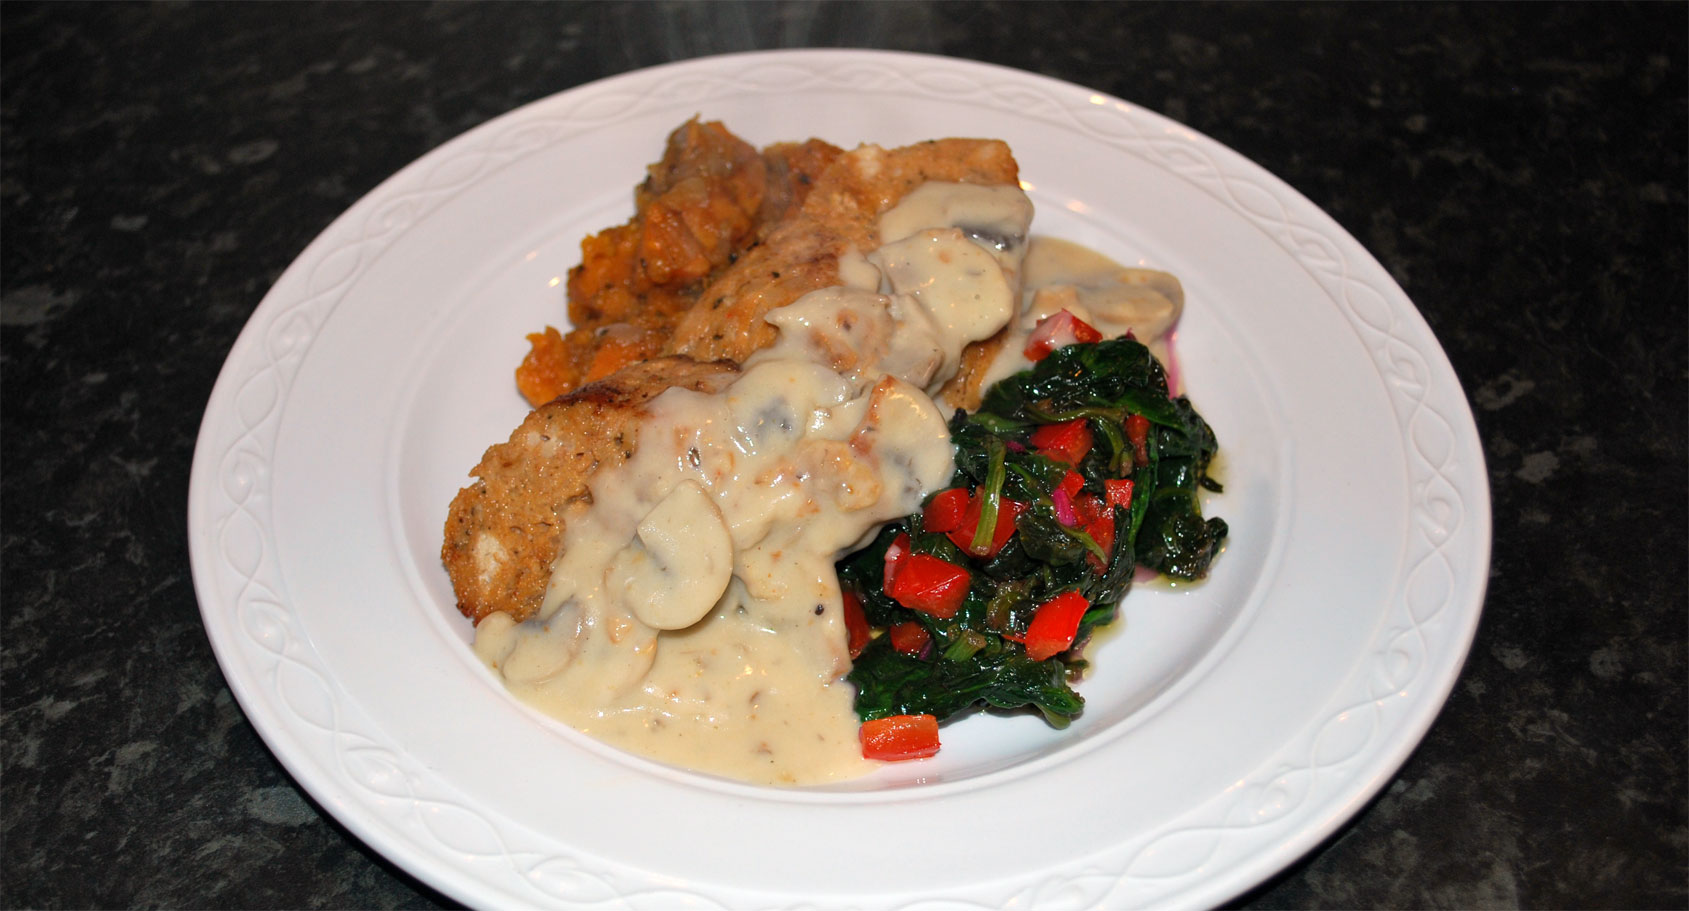 Escalope of Chicken with Sweet Potato, Mushroom & Grain Mustard Sauce with Spinach & Pimento